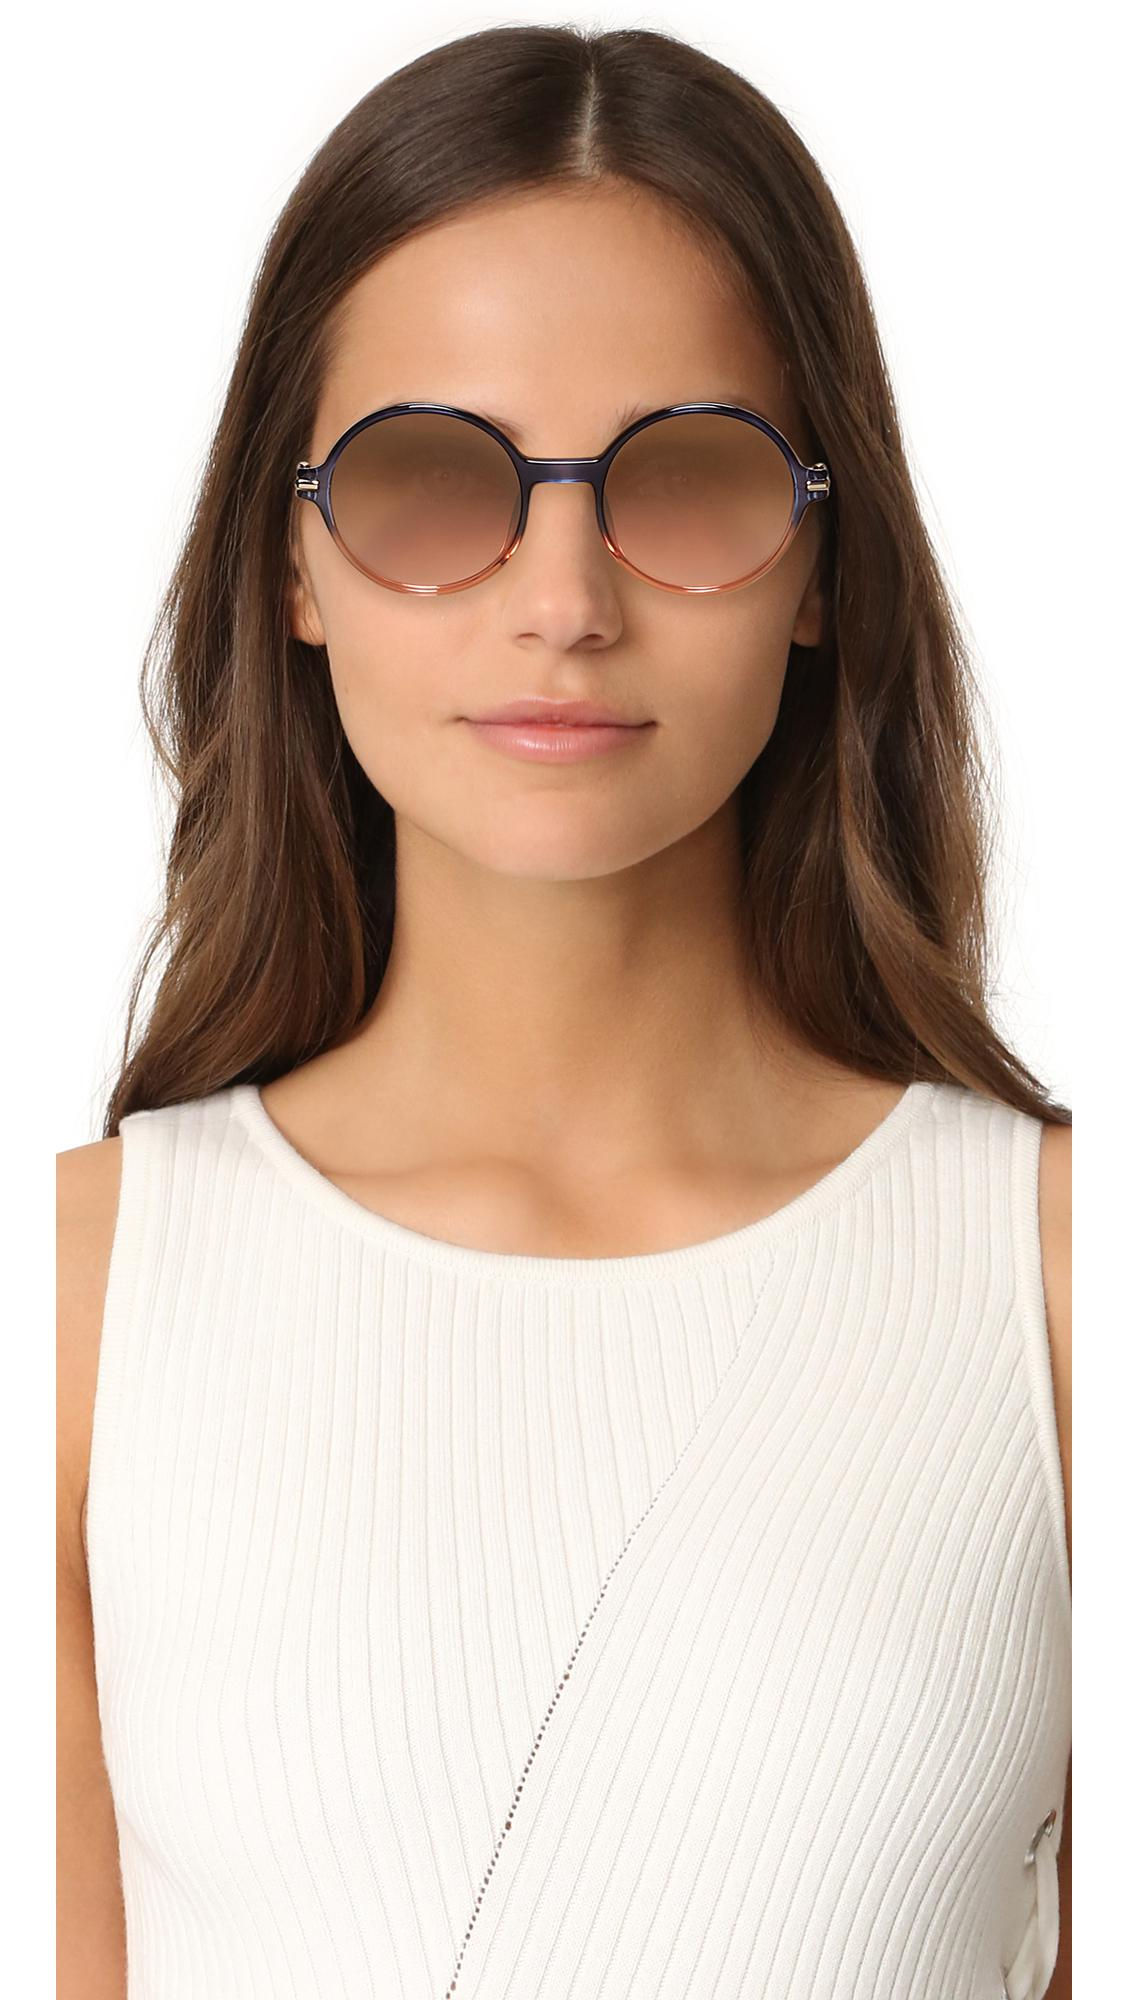 743d028b67a7 Lyst - Marc Jacobs Perfectly Round Sunglasses